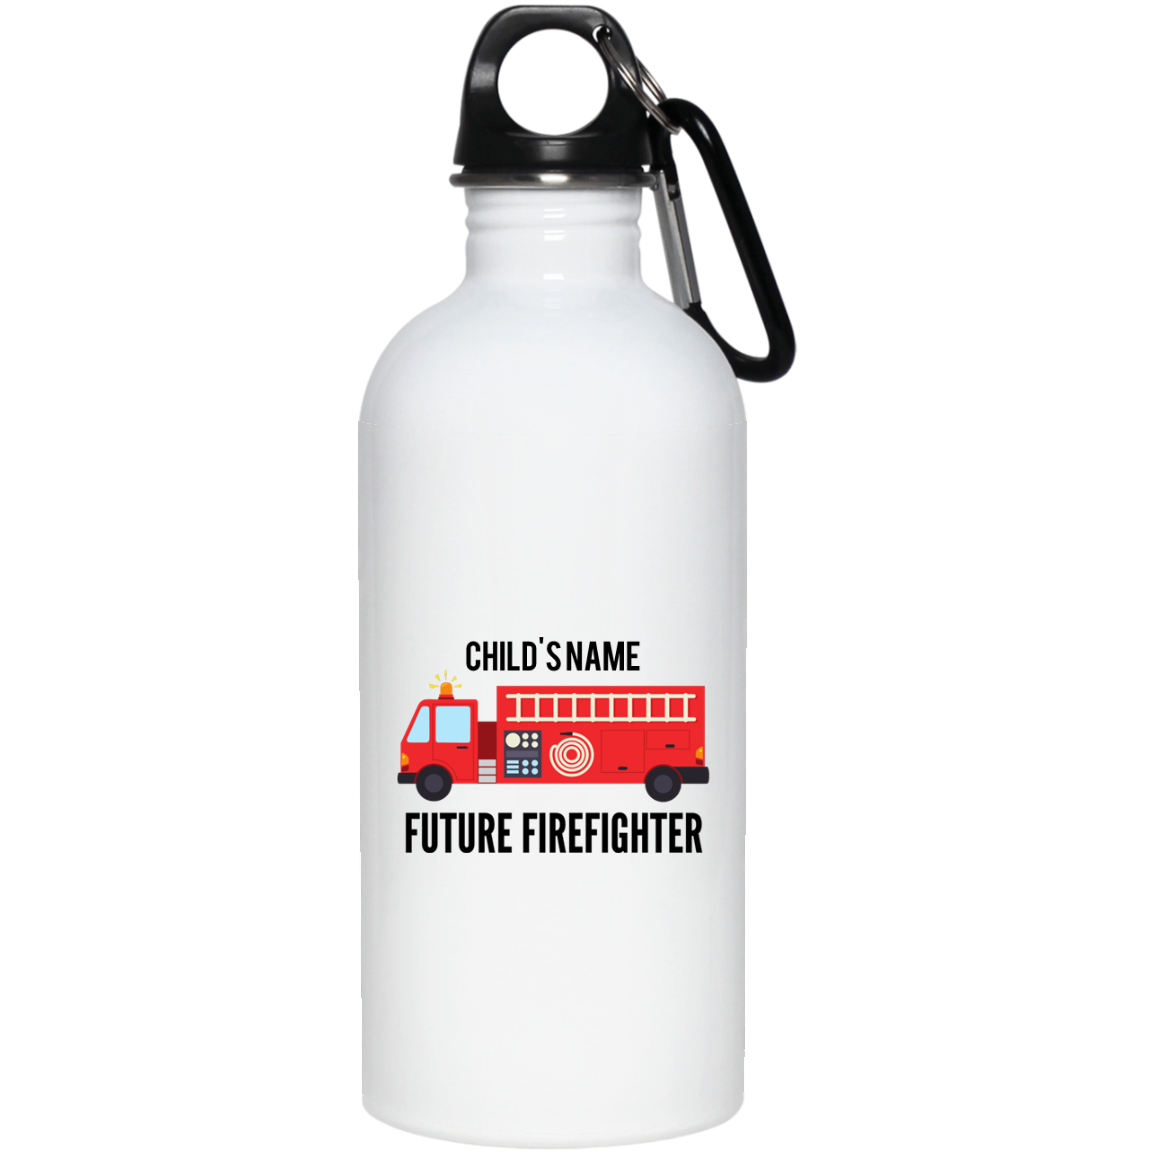 Personalized Future Firefighter 20 oz. Stainless Steel Water Bottle